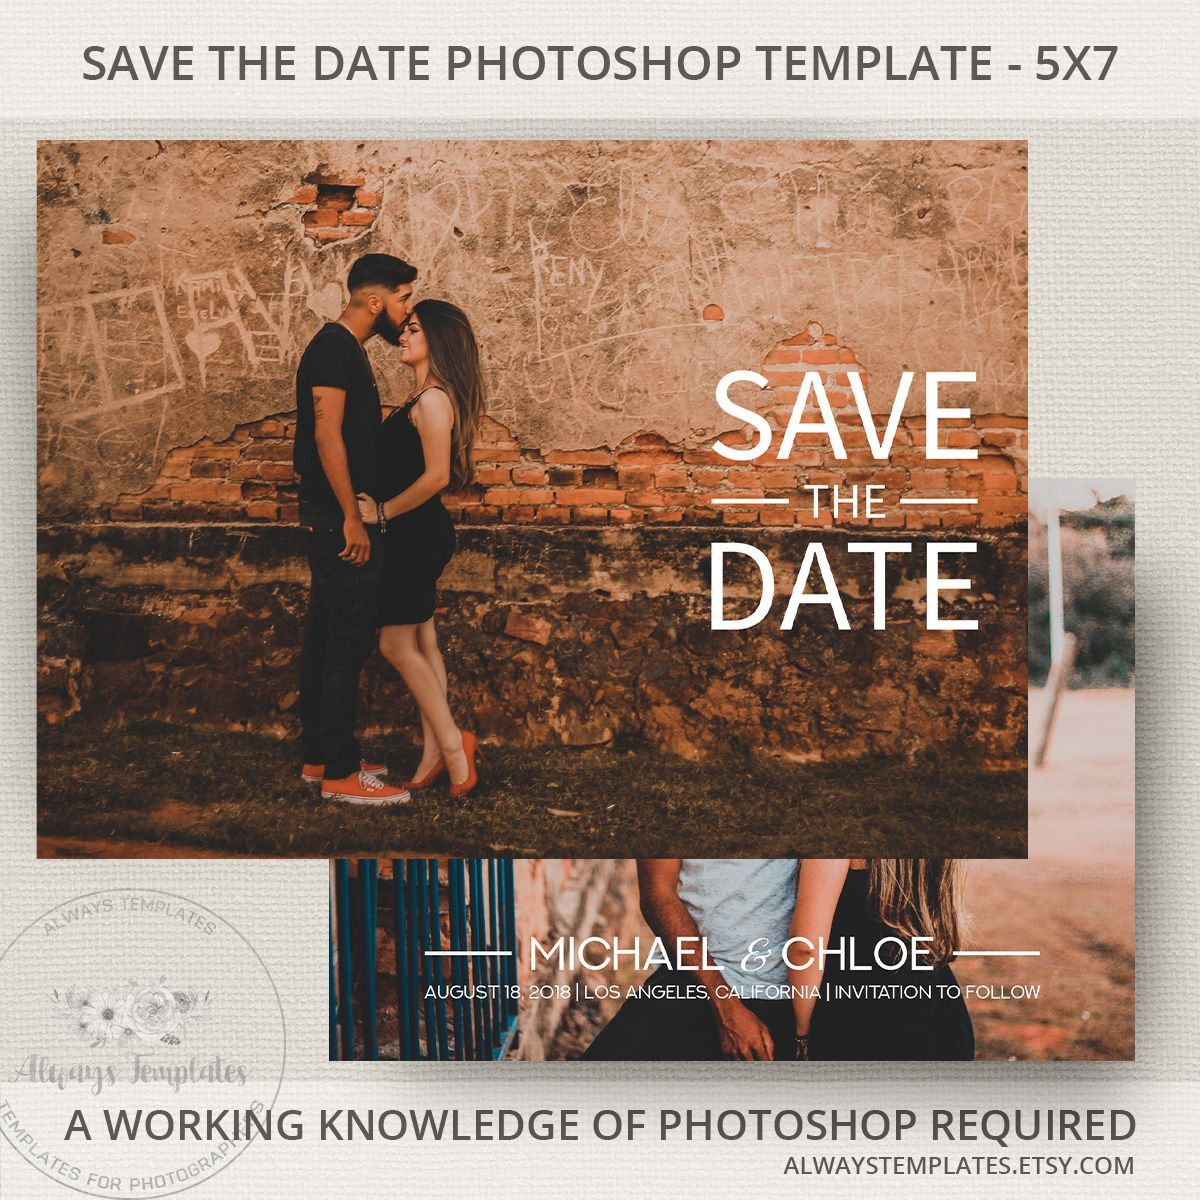 002 Excellent Save The Date Template Photoshop High Resolution  Adobe CardFull